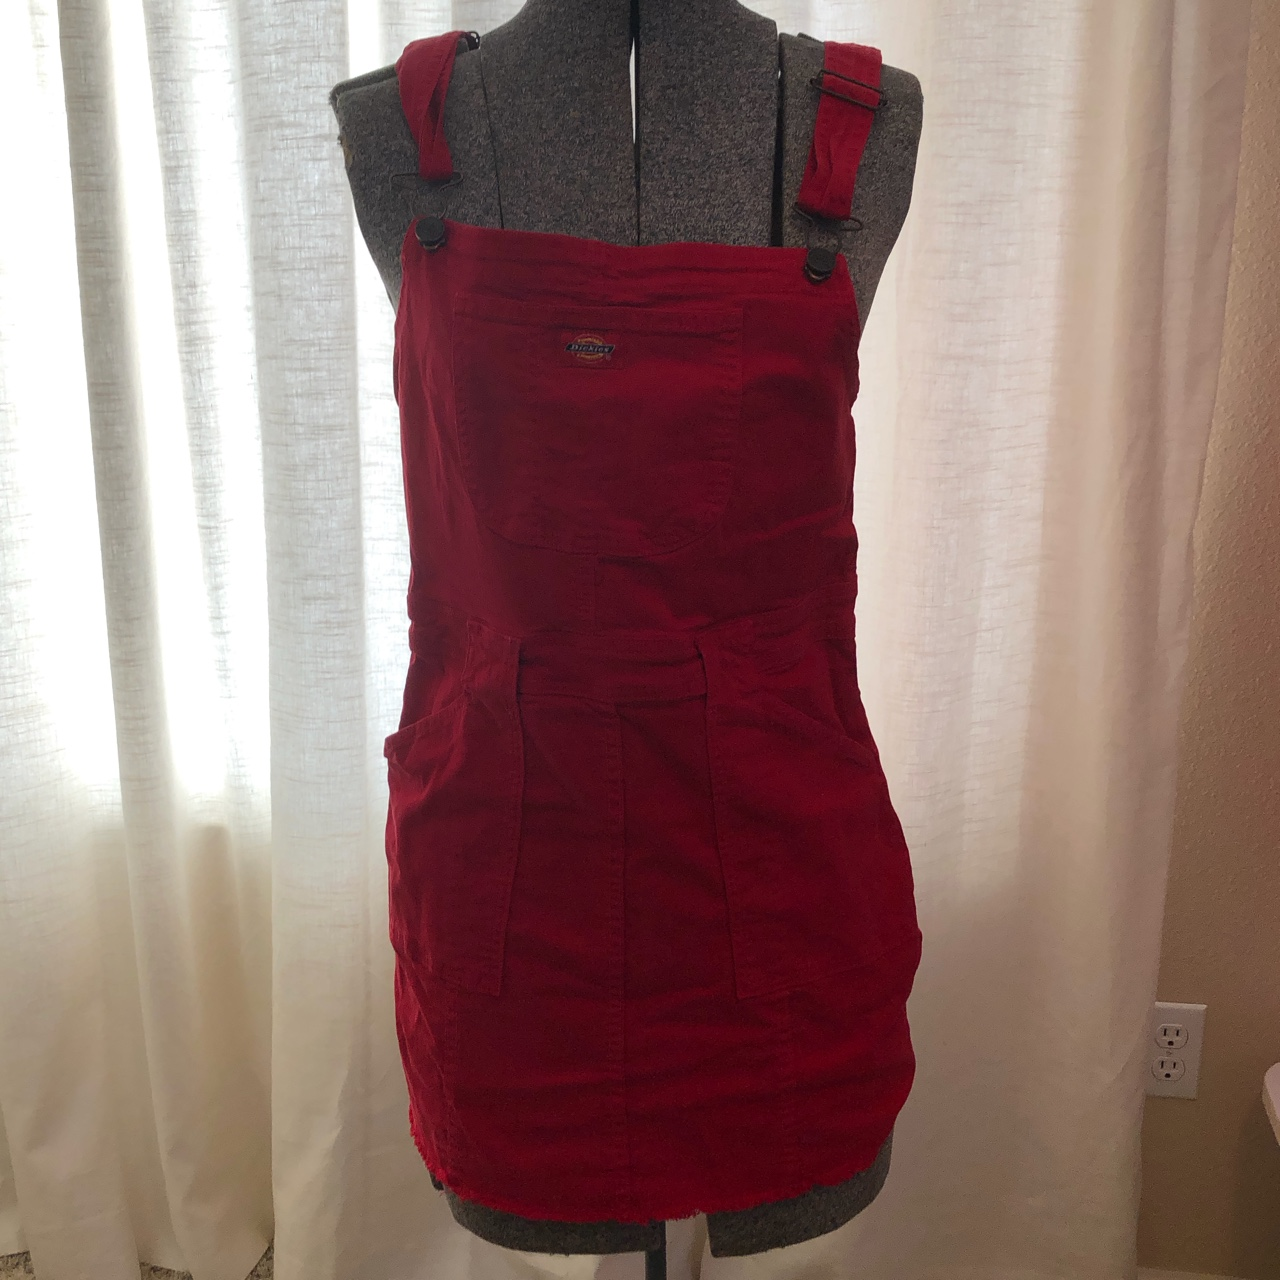 Product Image 1 - adorable bright red dickies overall/dress!